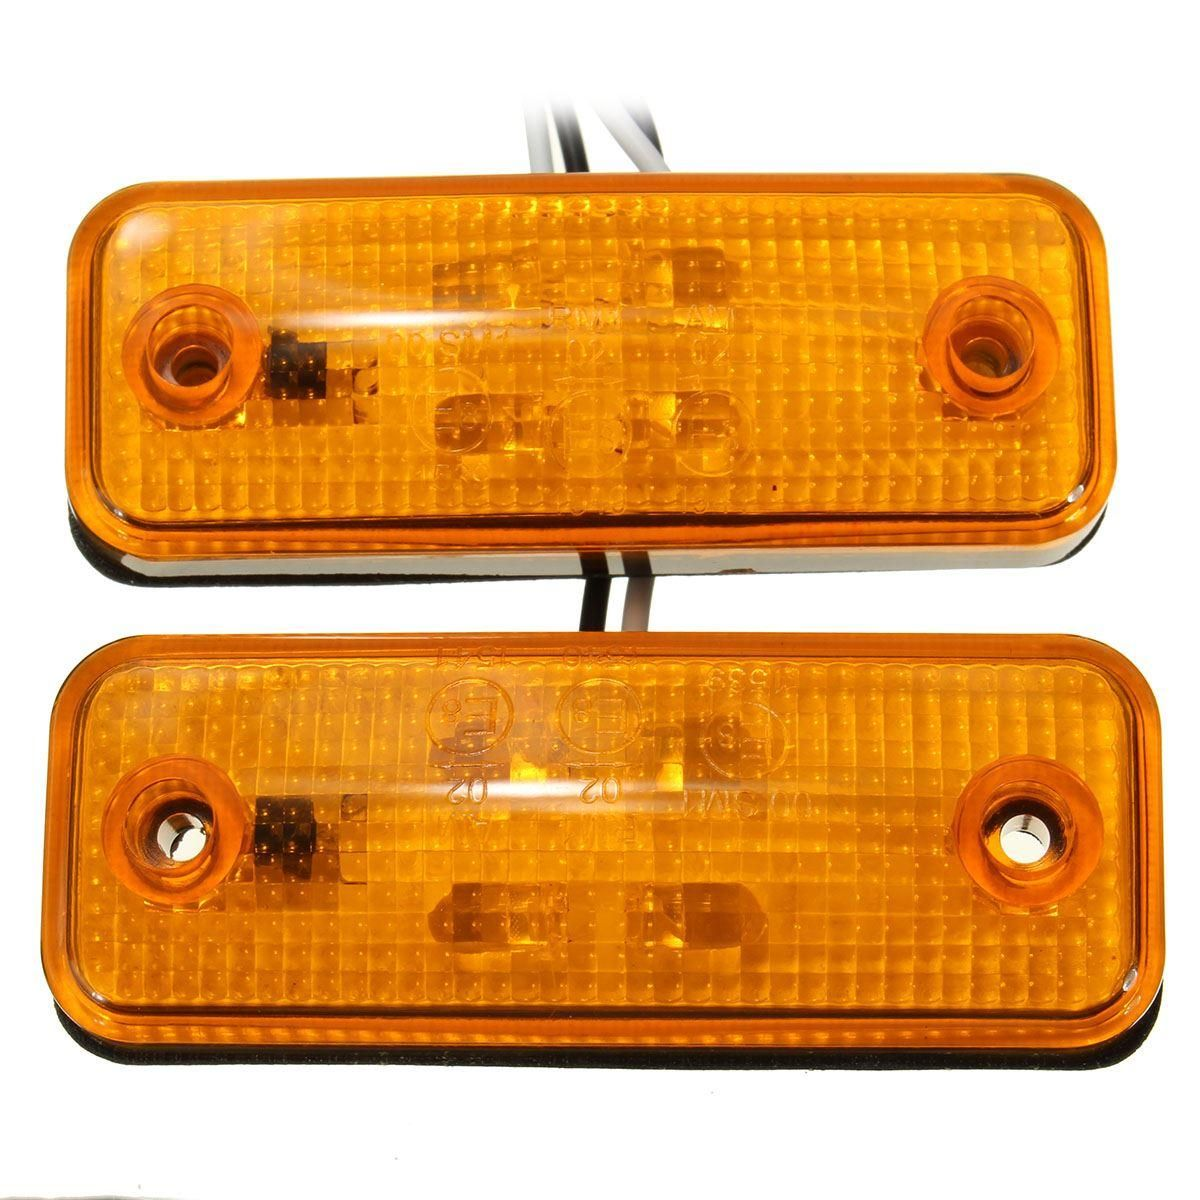 2pcs 4 Led Side Marker Light Indicator Lamp Bus Truck Trailer Lorry Caravan 10 30v E8 14 99 Car Lights Truck And Trailer Lorry